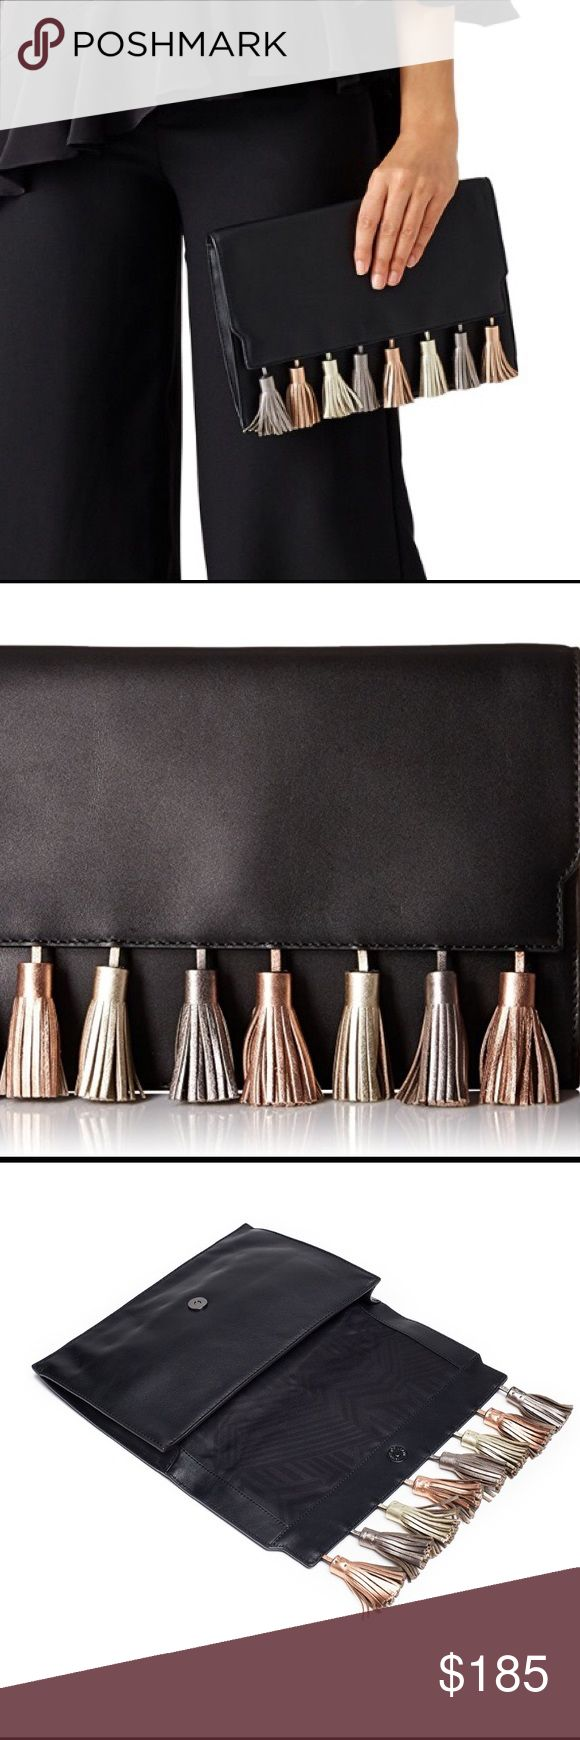 """🎉HP🎉NWT Rebecca Minkoff Metallic Clutch Rebecca Minkoff Metallic Clutch Bag!!!!!   Black leather clutch with multicolored metallic tassel accents. Top flap closure and hidden adjustable shoulder strap with a 23.5"""" drop. Slim back pocket abd a lined, 2-pocket interior. 7.75""""L x 11.5""""W x 1""""D.  Gorgeous Bag!! Rebecca Minkoff Bags Clutches & Wristlets"""